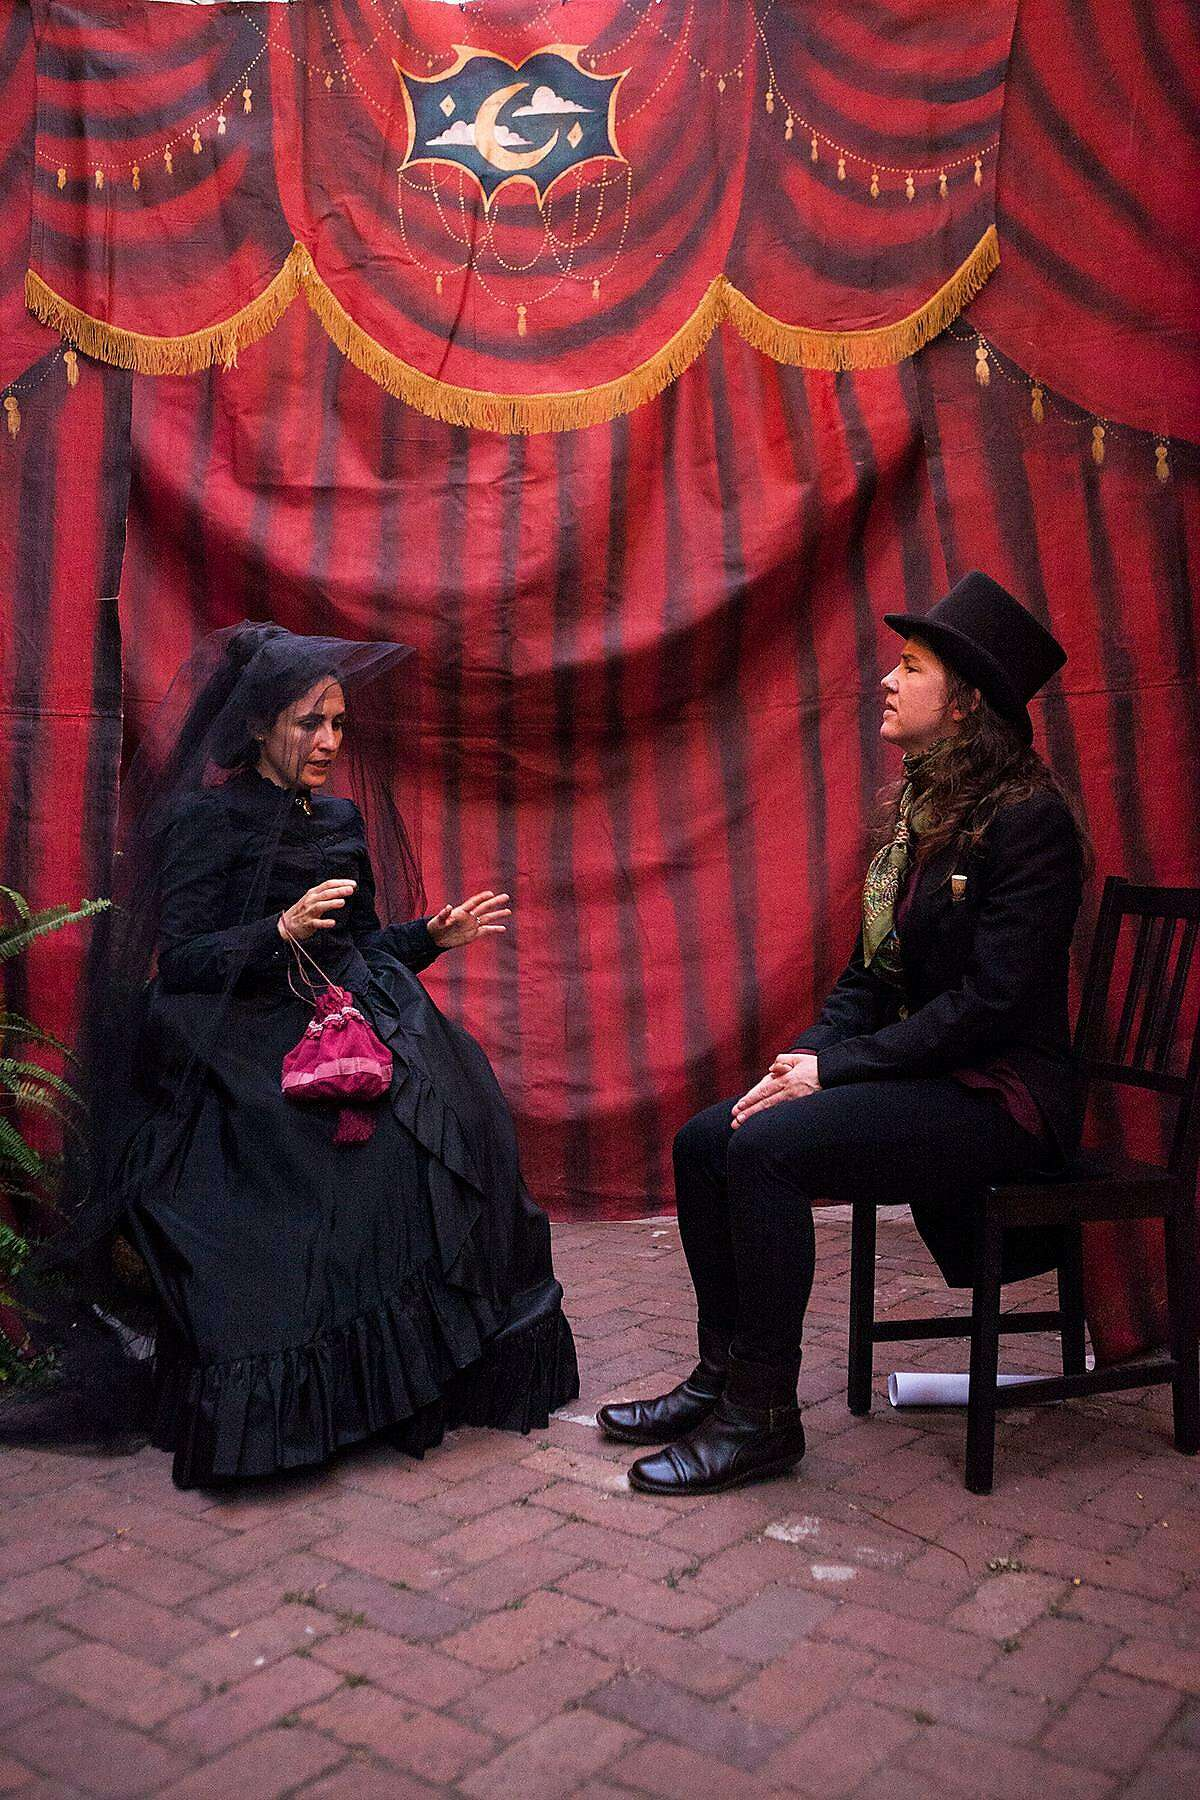 From left: Maria A. Leigh as Josephine and�Julie Douglas as the Seller, Doctor Vitae, in Idiot String's